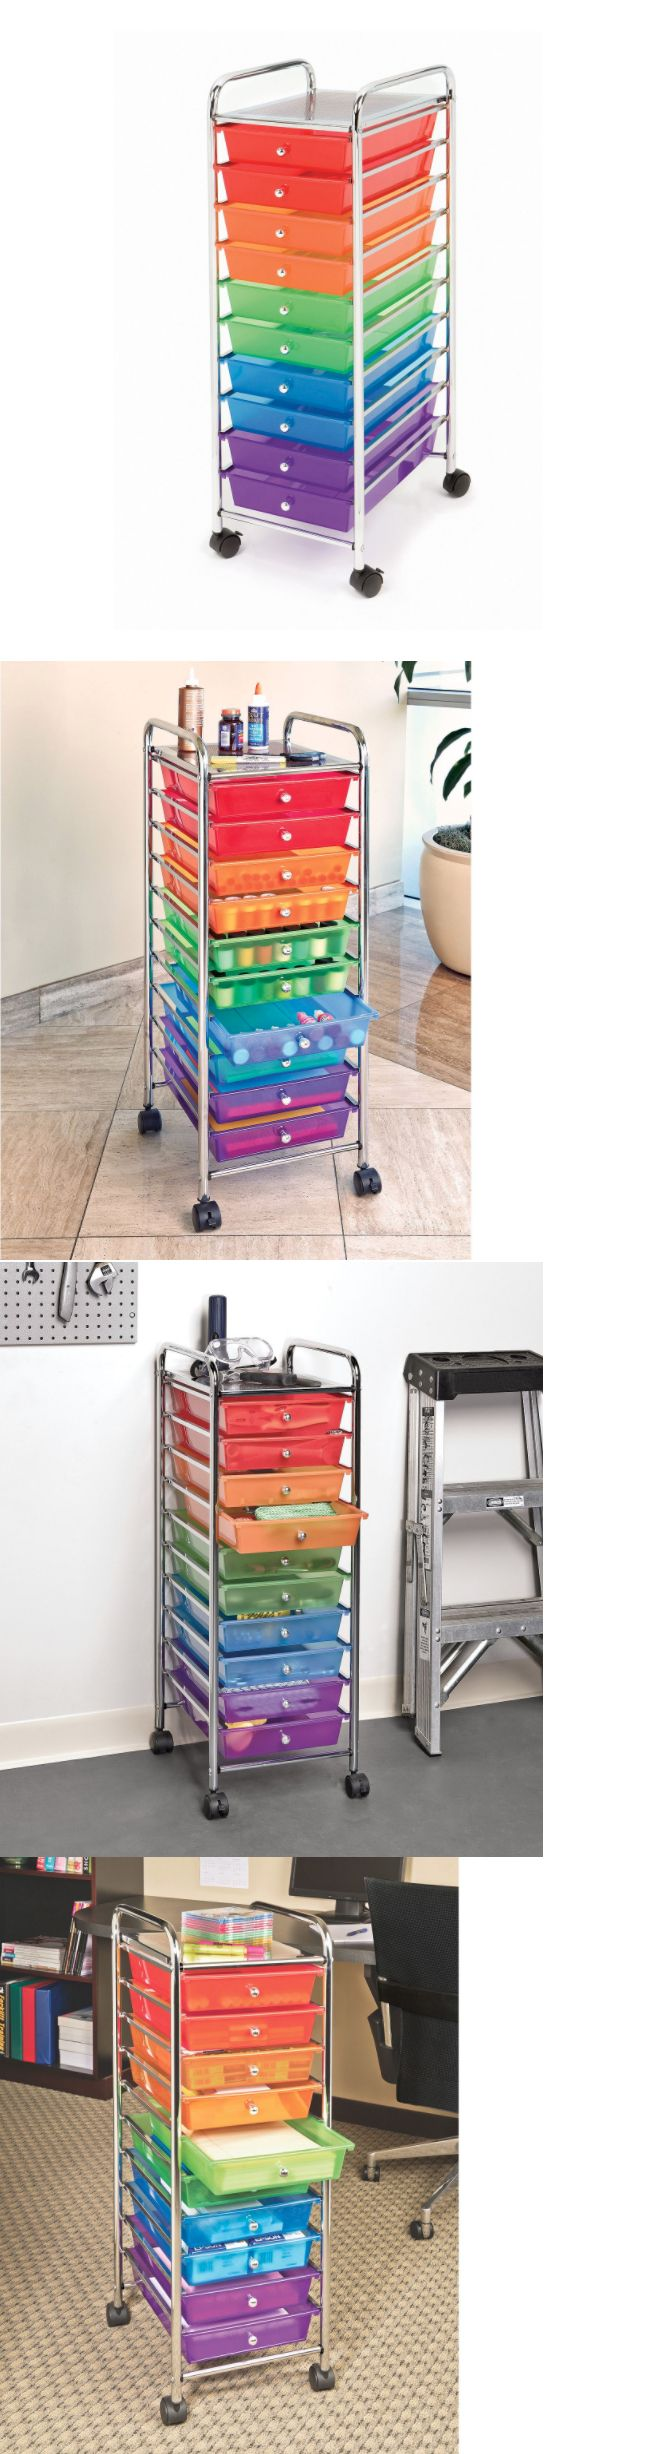 Craft Carts 146400: Multi Colored 10 Drawer Storage Cart For Crafts Sewing  School Art Supplies